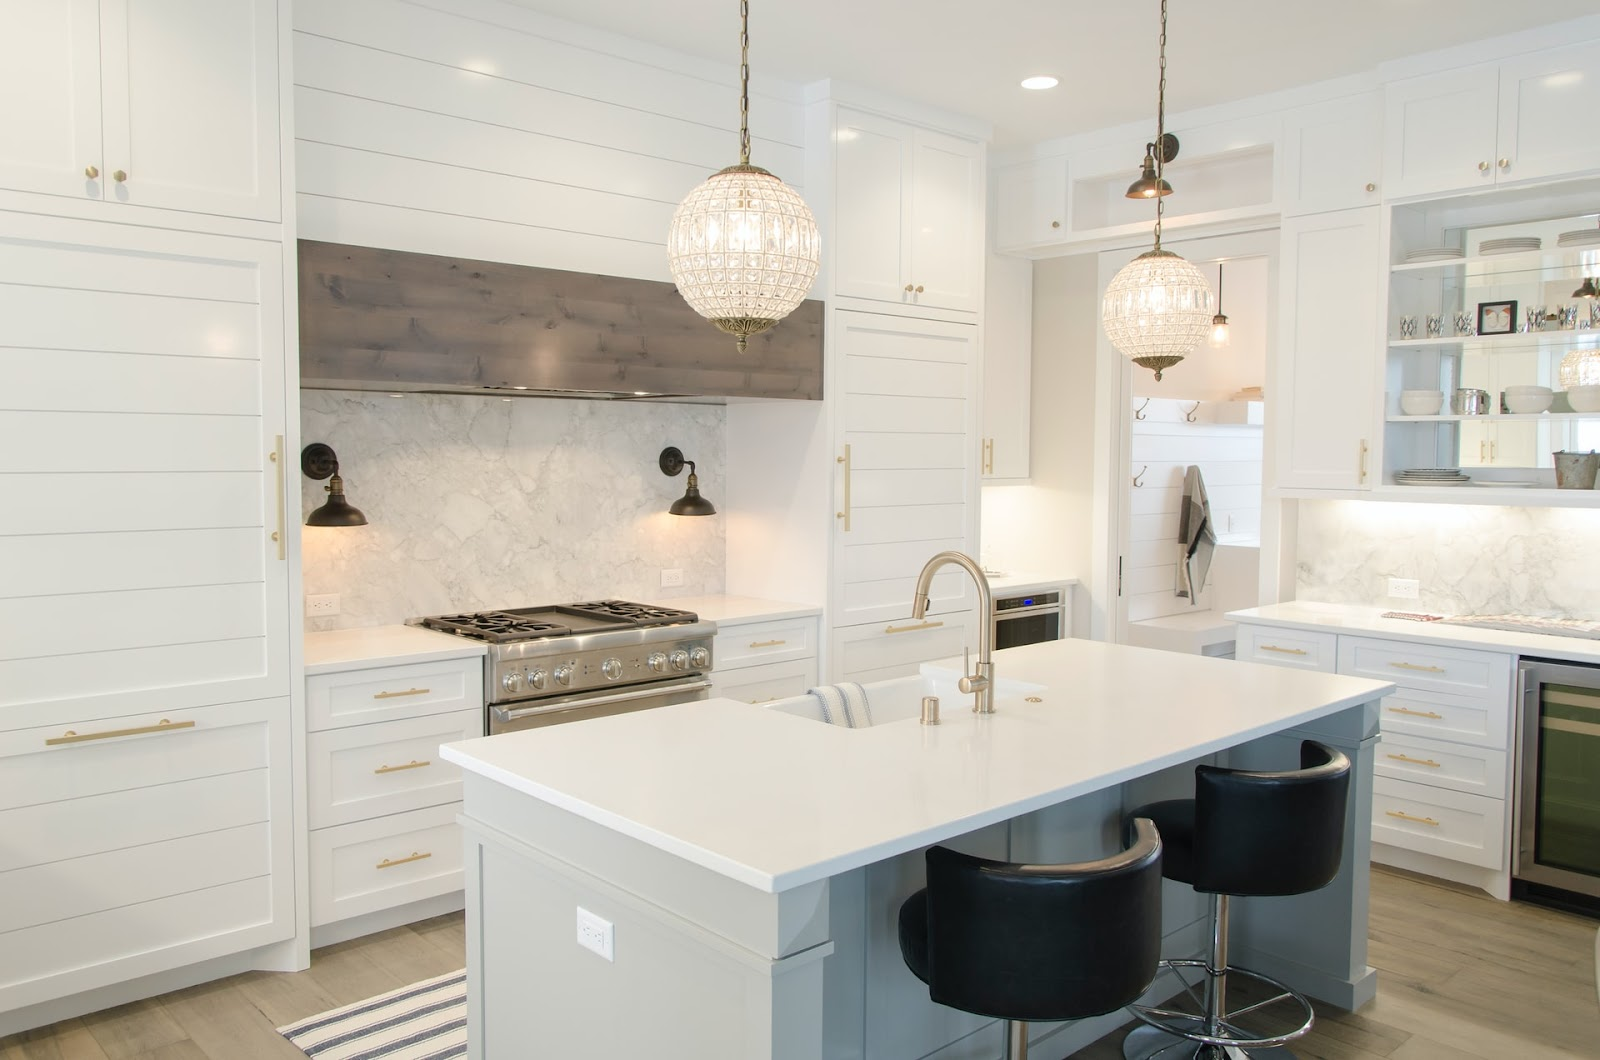 An all-white kitchen design with round-shaped pendant lights representing the importance of choosing the perfect kitchen cabinets